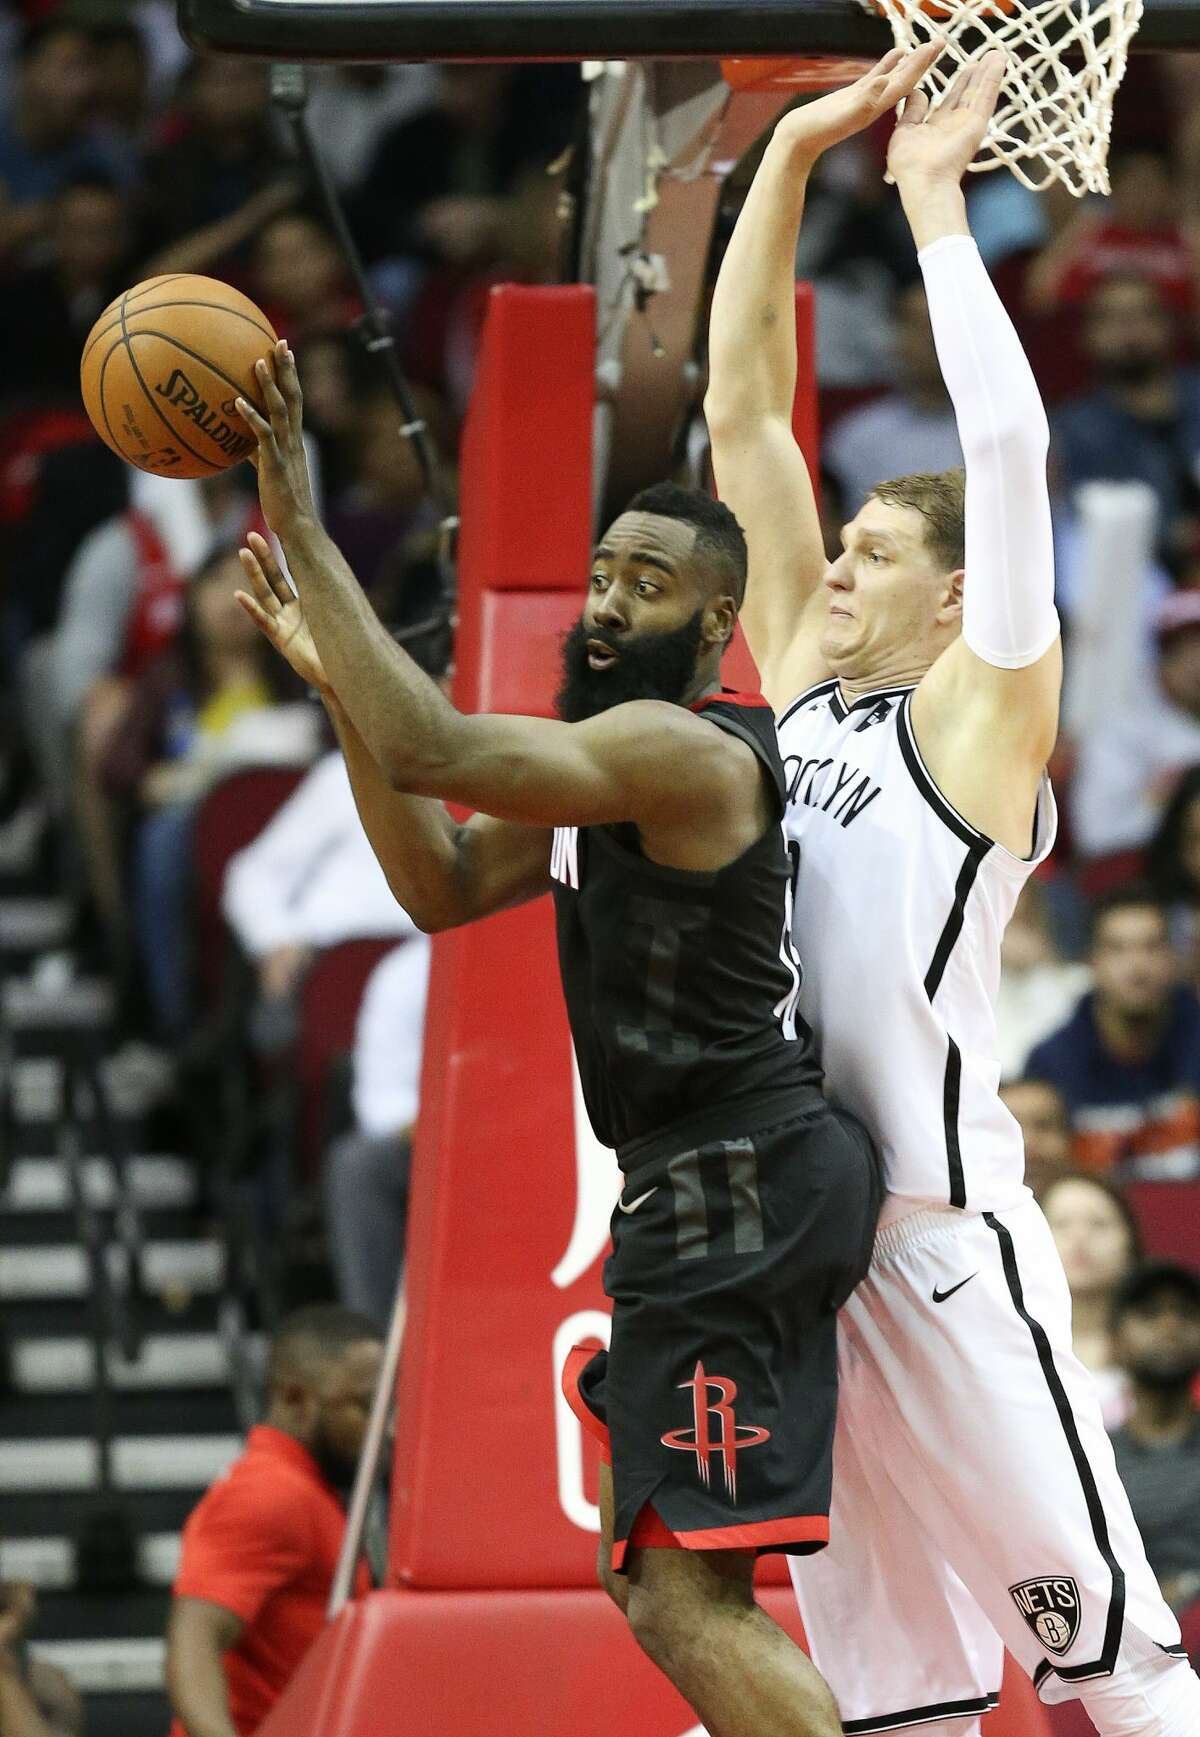 Houston Rockets guard James Harden, left, passes the ball as Brooklyn Nets center Timofey Mozgov defends during the second half of an NBA basketball game, Monday, Nov. 27, 2017, in Houston. Houston won the game 117-103. (AP Photo/Eric Christian Smith)